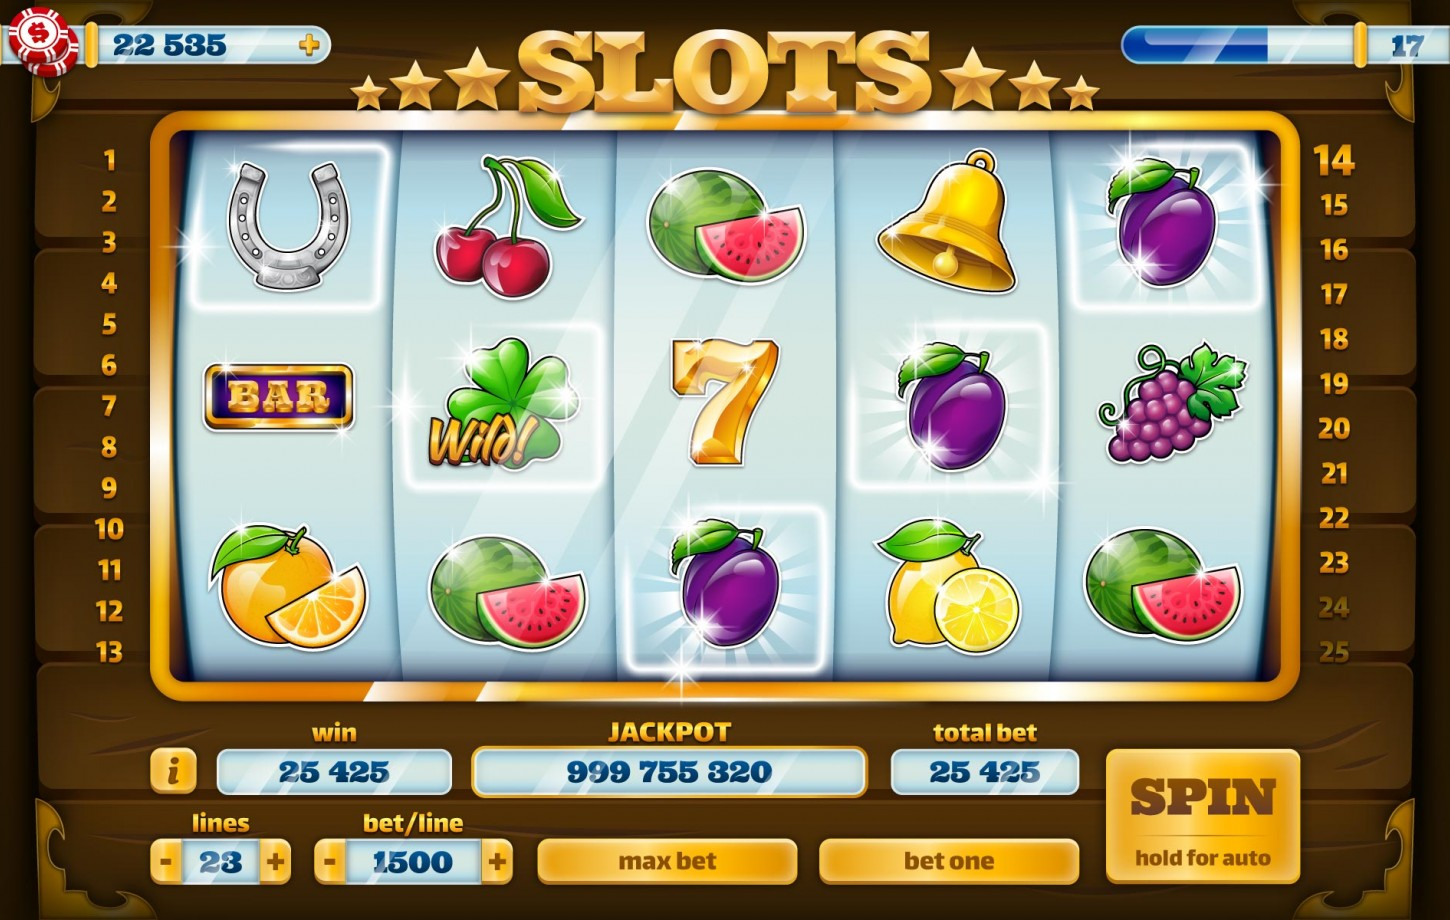 Slots Cassino UI Animated GUI Game Kit